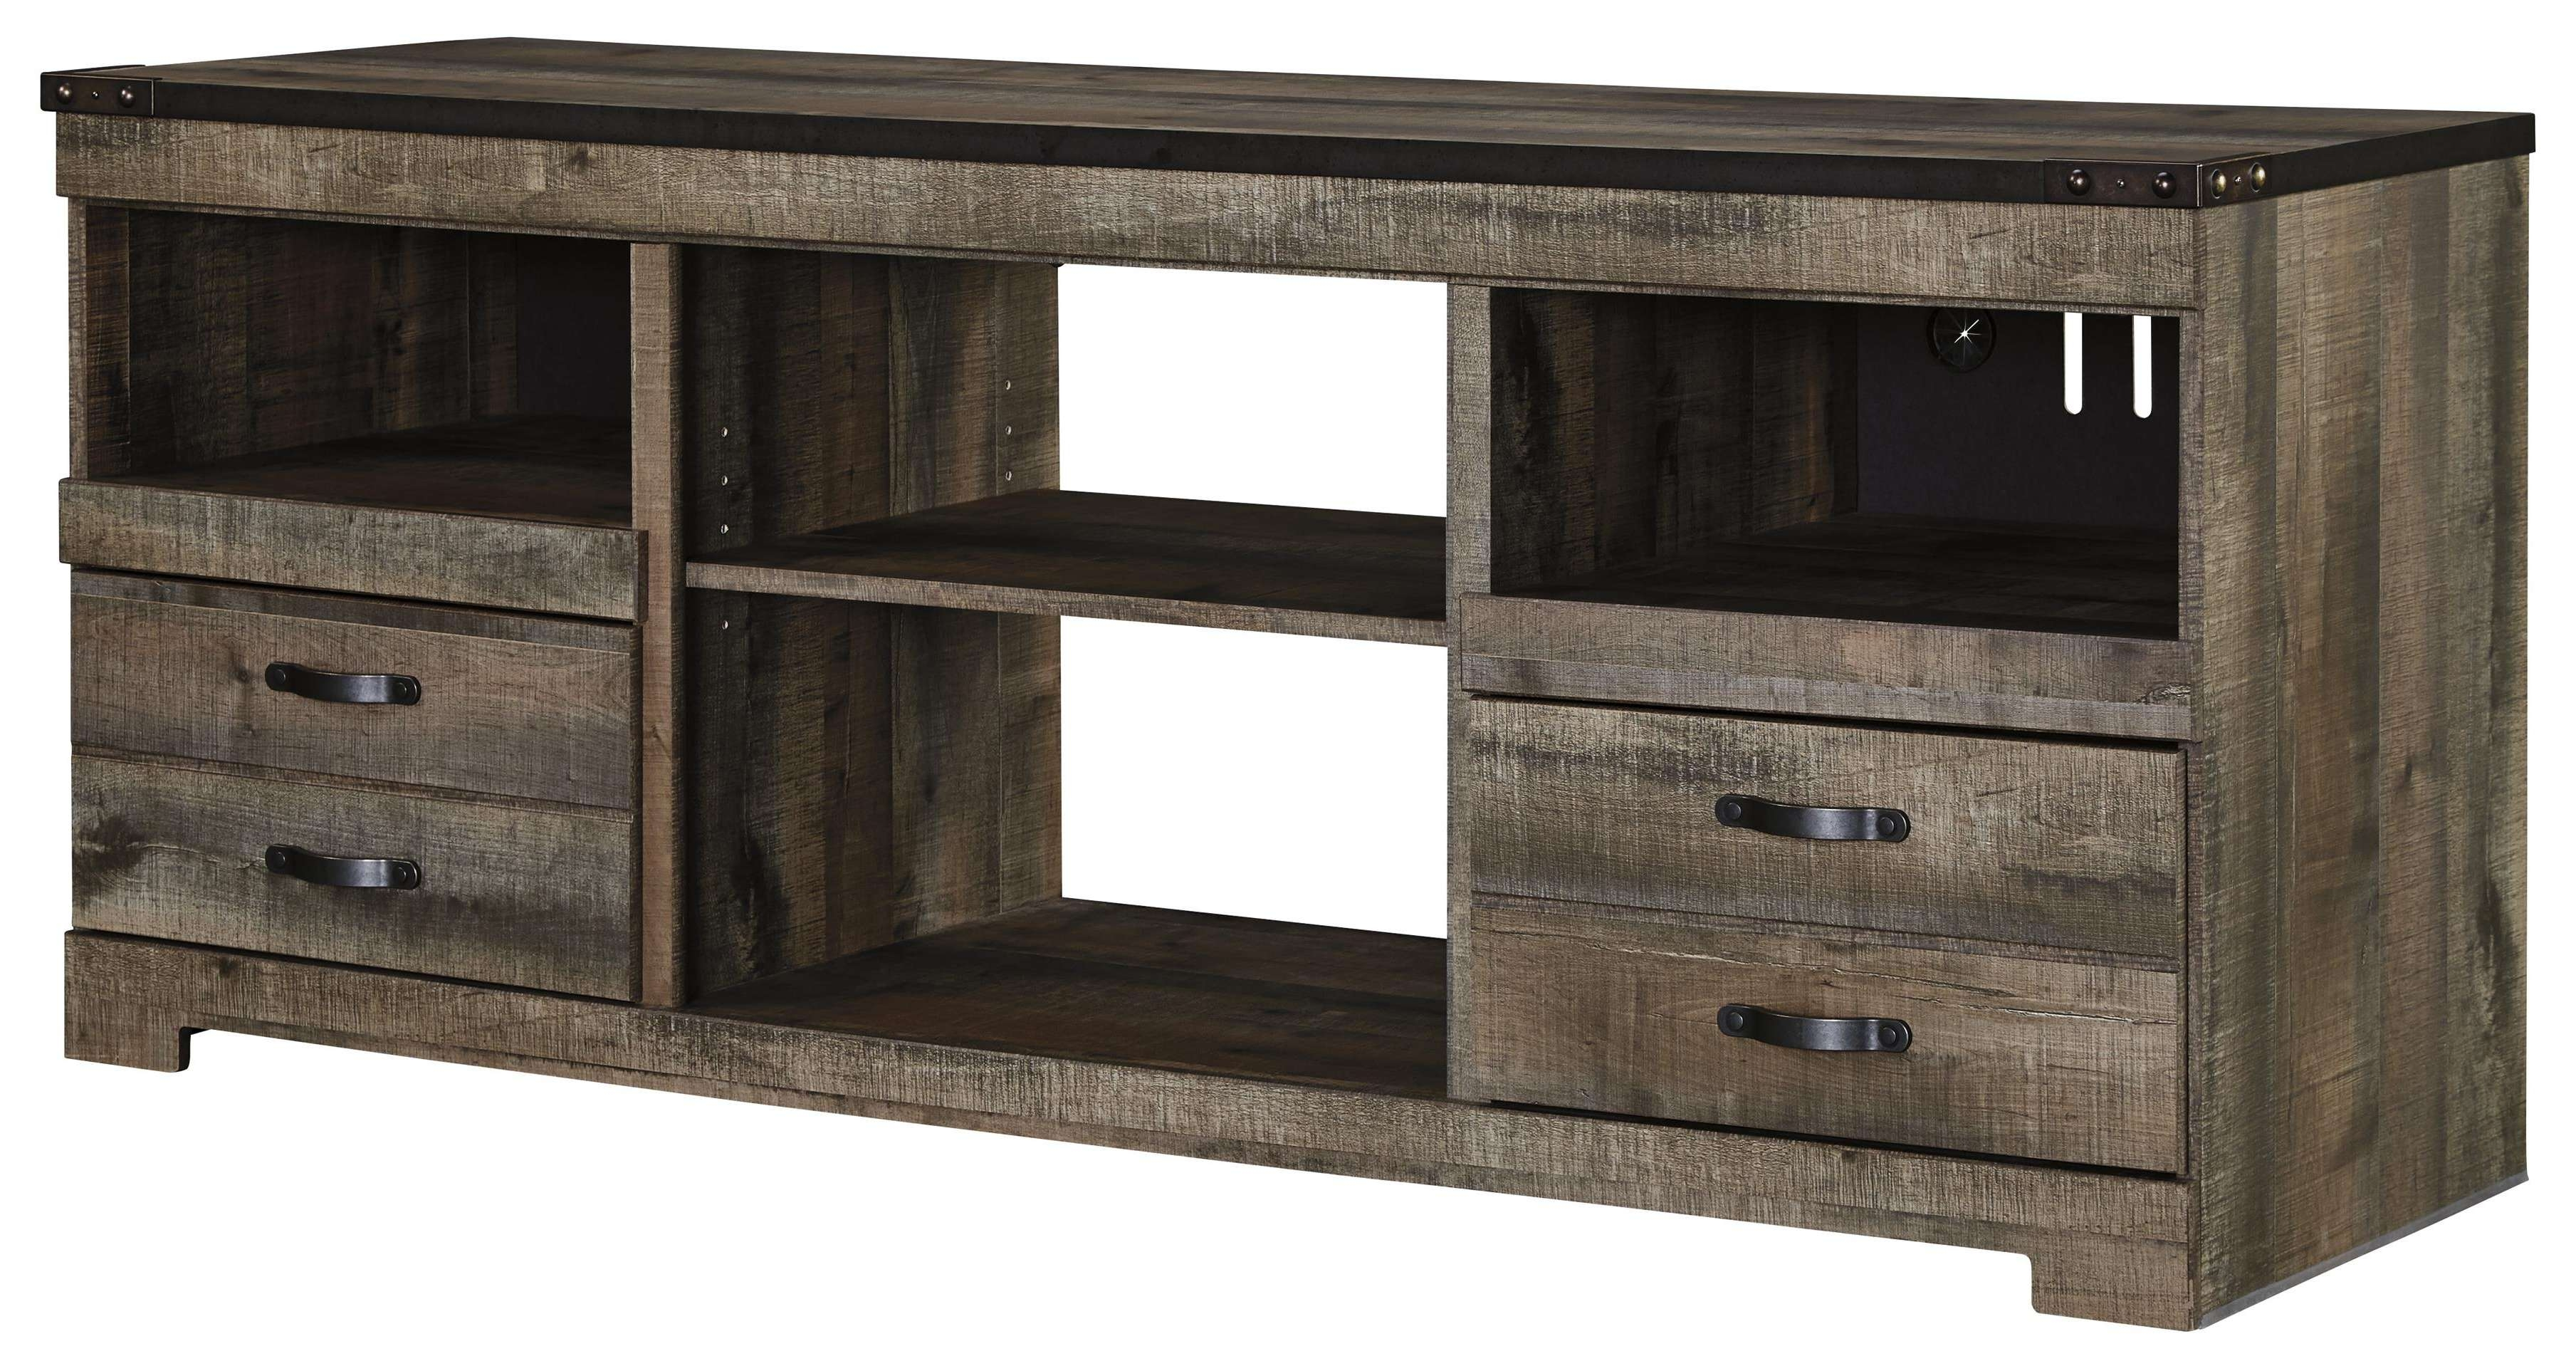 Rustic Large Tv Stand With Metal Rivet Detailsignature Design Intended For Rustic Furniture Tv Stands (View 10 of 20)